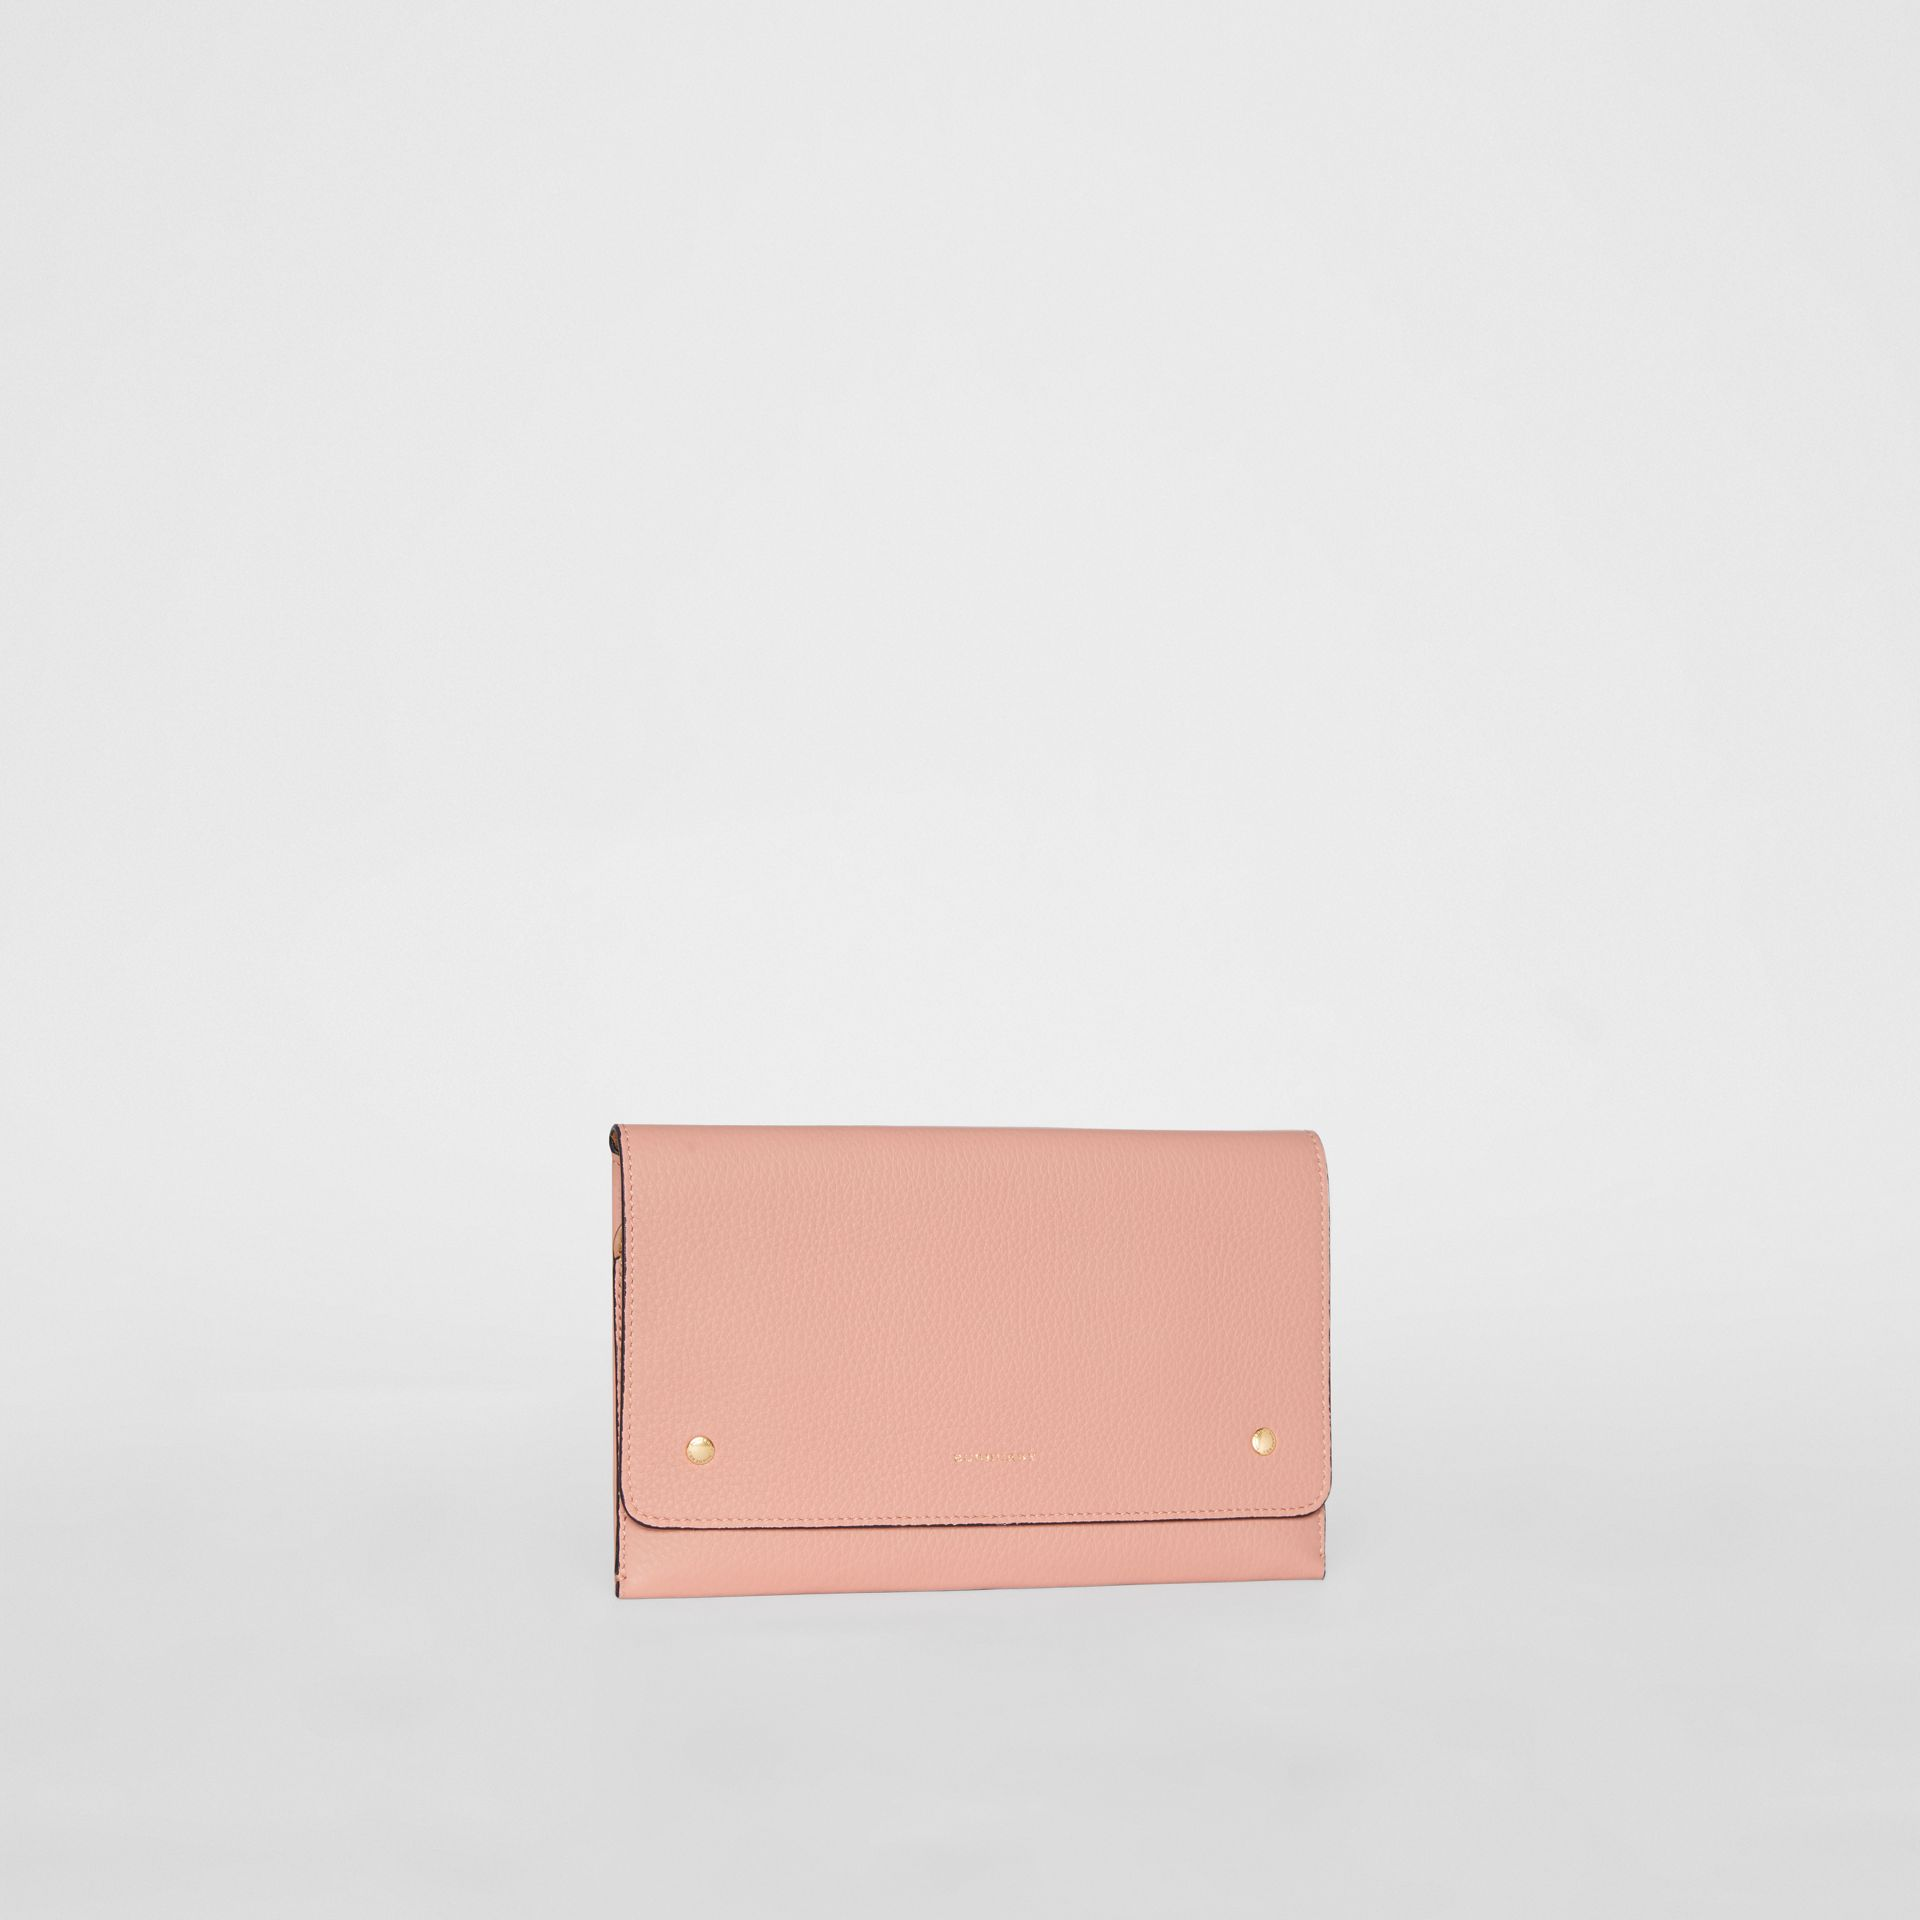 Two-tone Leather Wristlet Clutch in Ash Rose - Women | Burberry - gallery image 5